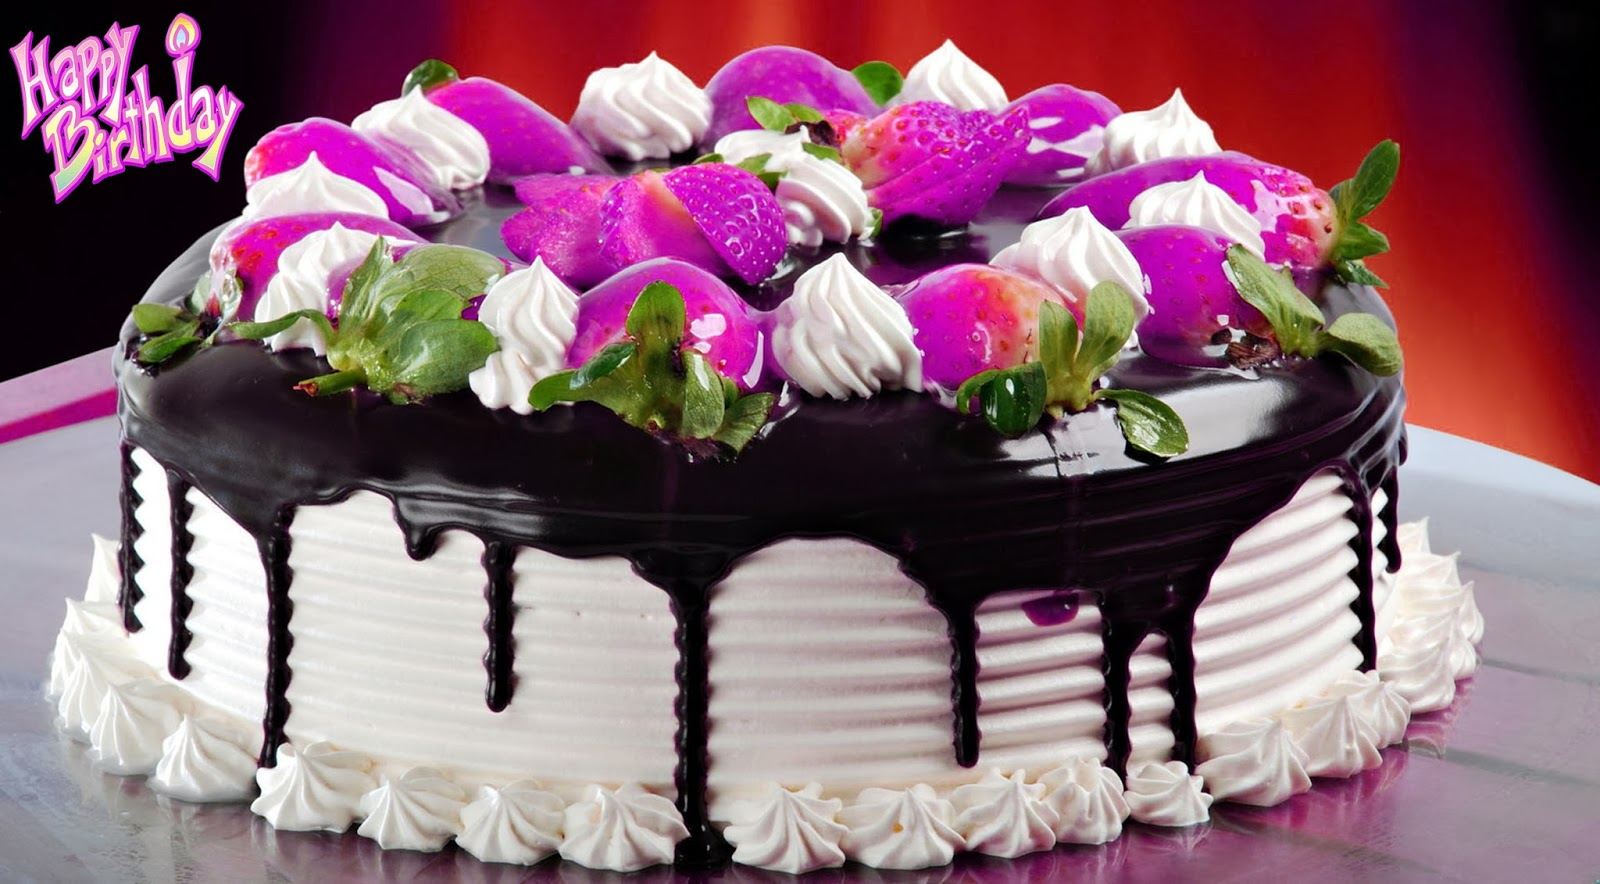 Happy-Birthday-Butter-Cake-With-Black-Chocolate-And-Strawberry-Image-HD-Wide